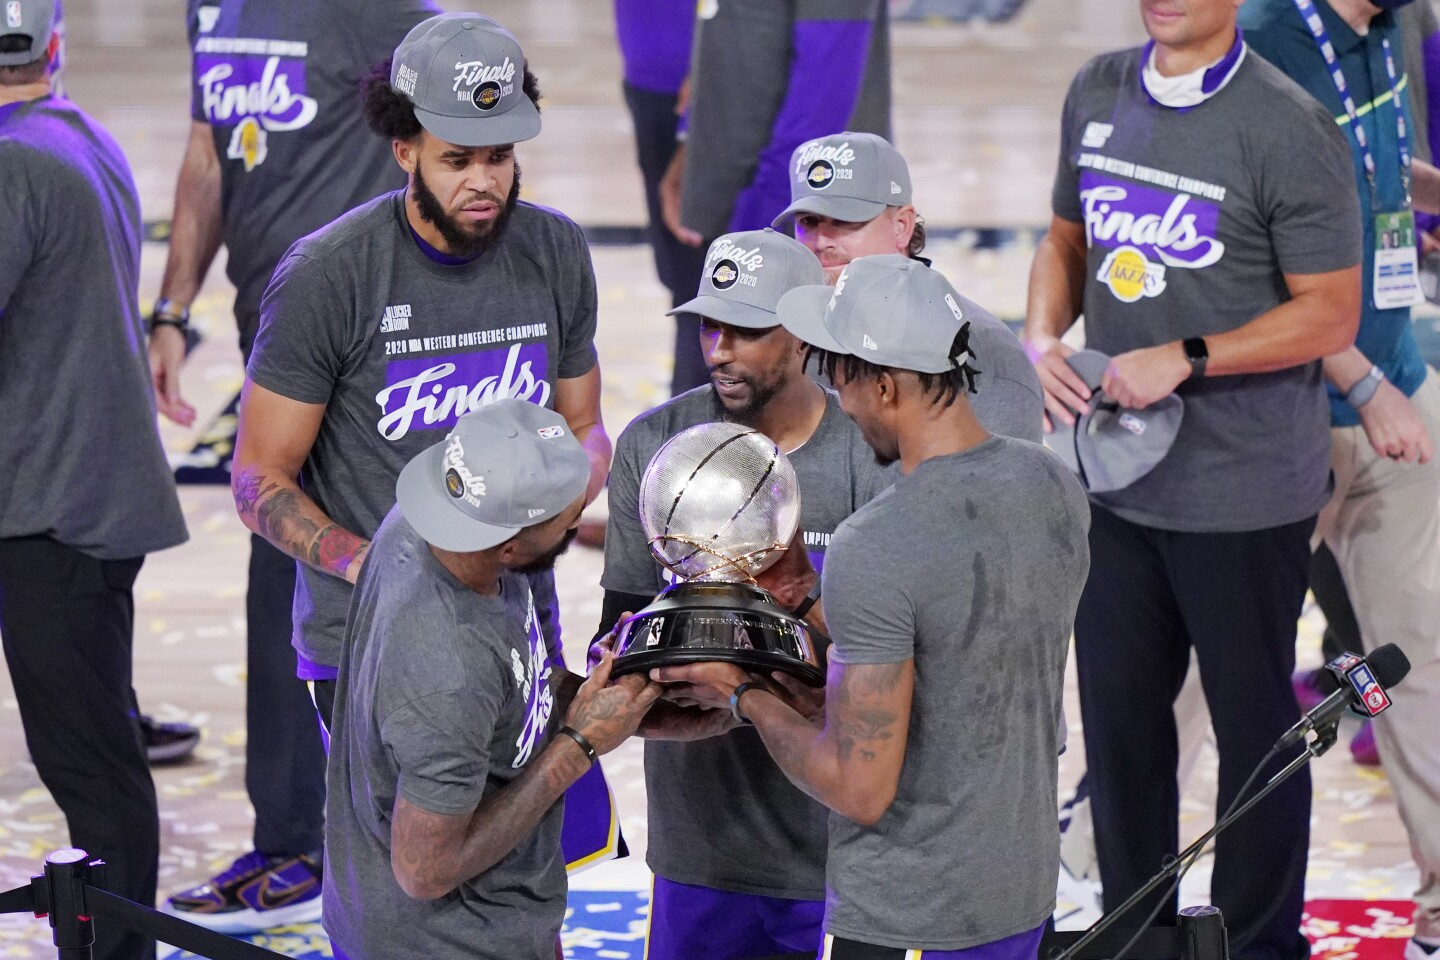 The Los Angeles Lakers celebrate after beating the Denver Nuggets in an NBA conference final playoff basketball game Saturday, Sept. 26, 2020, in Lake Buena Vista, Fla. The Lakers won 117-107 to win the series 4-1. (AP Photo/Mark J. Terrill)